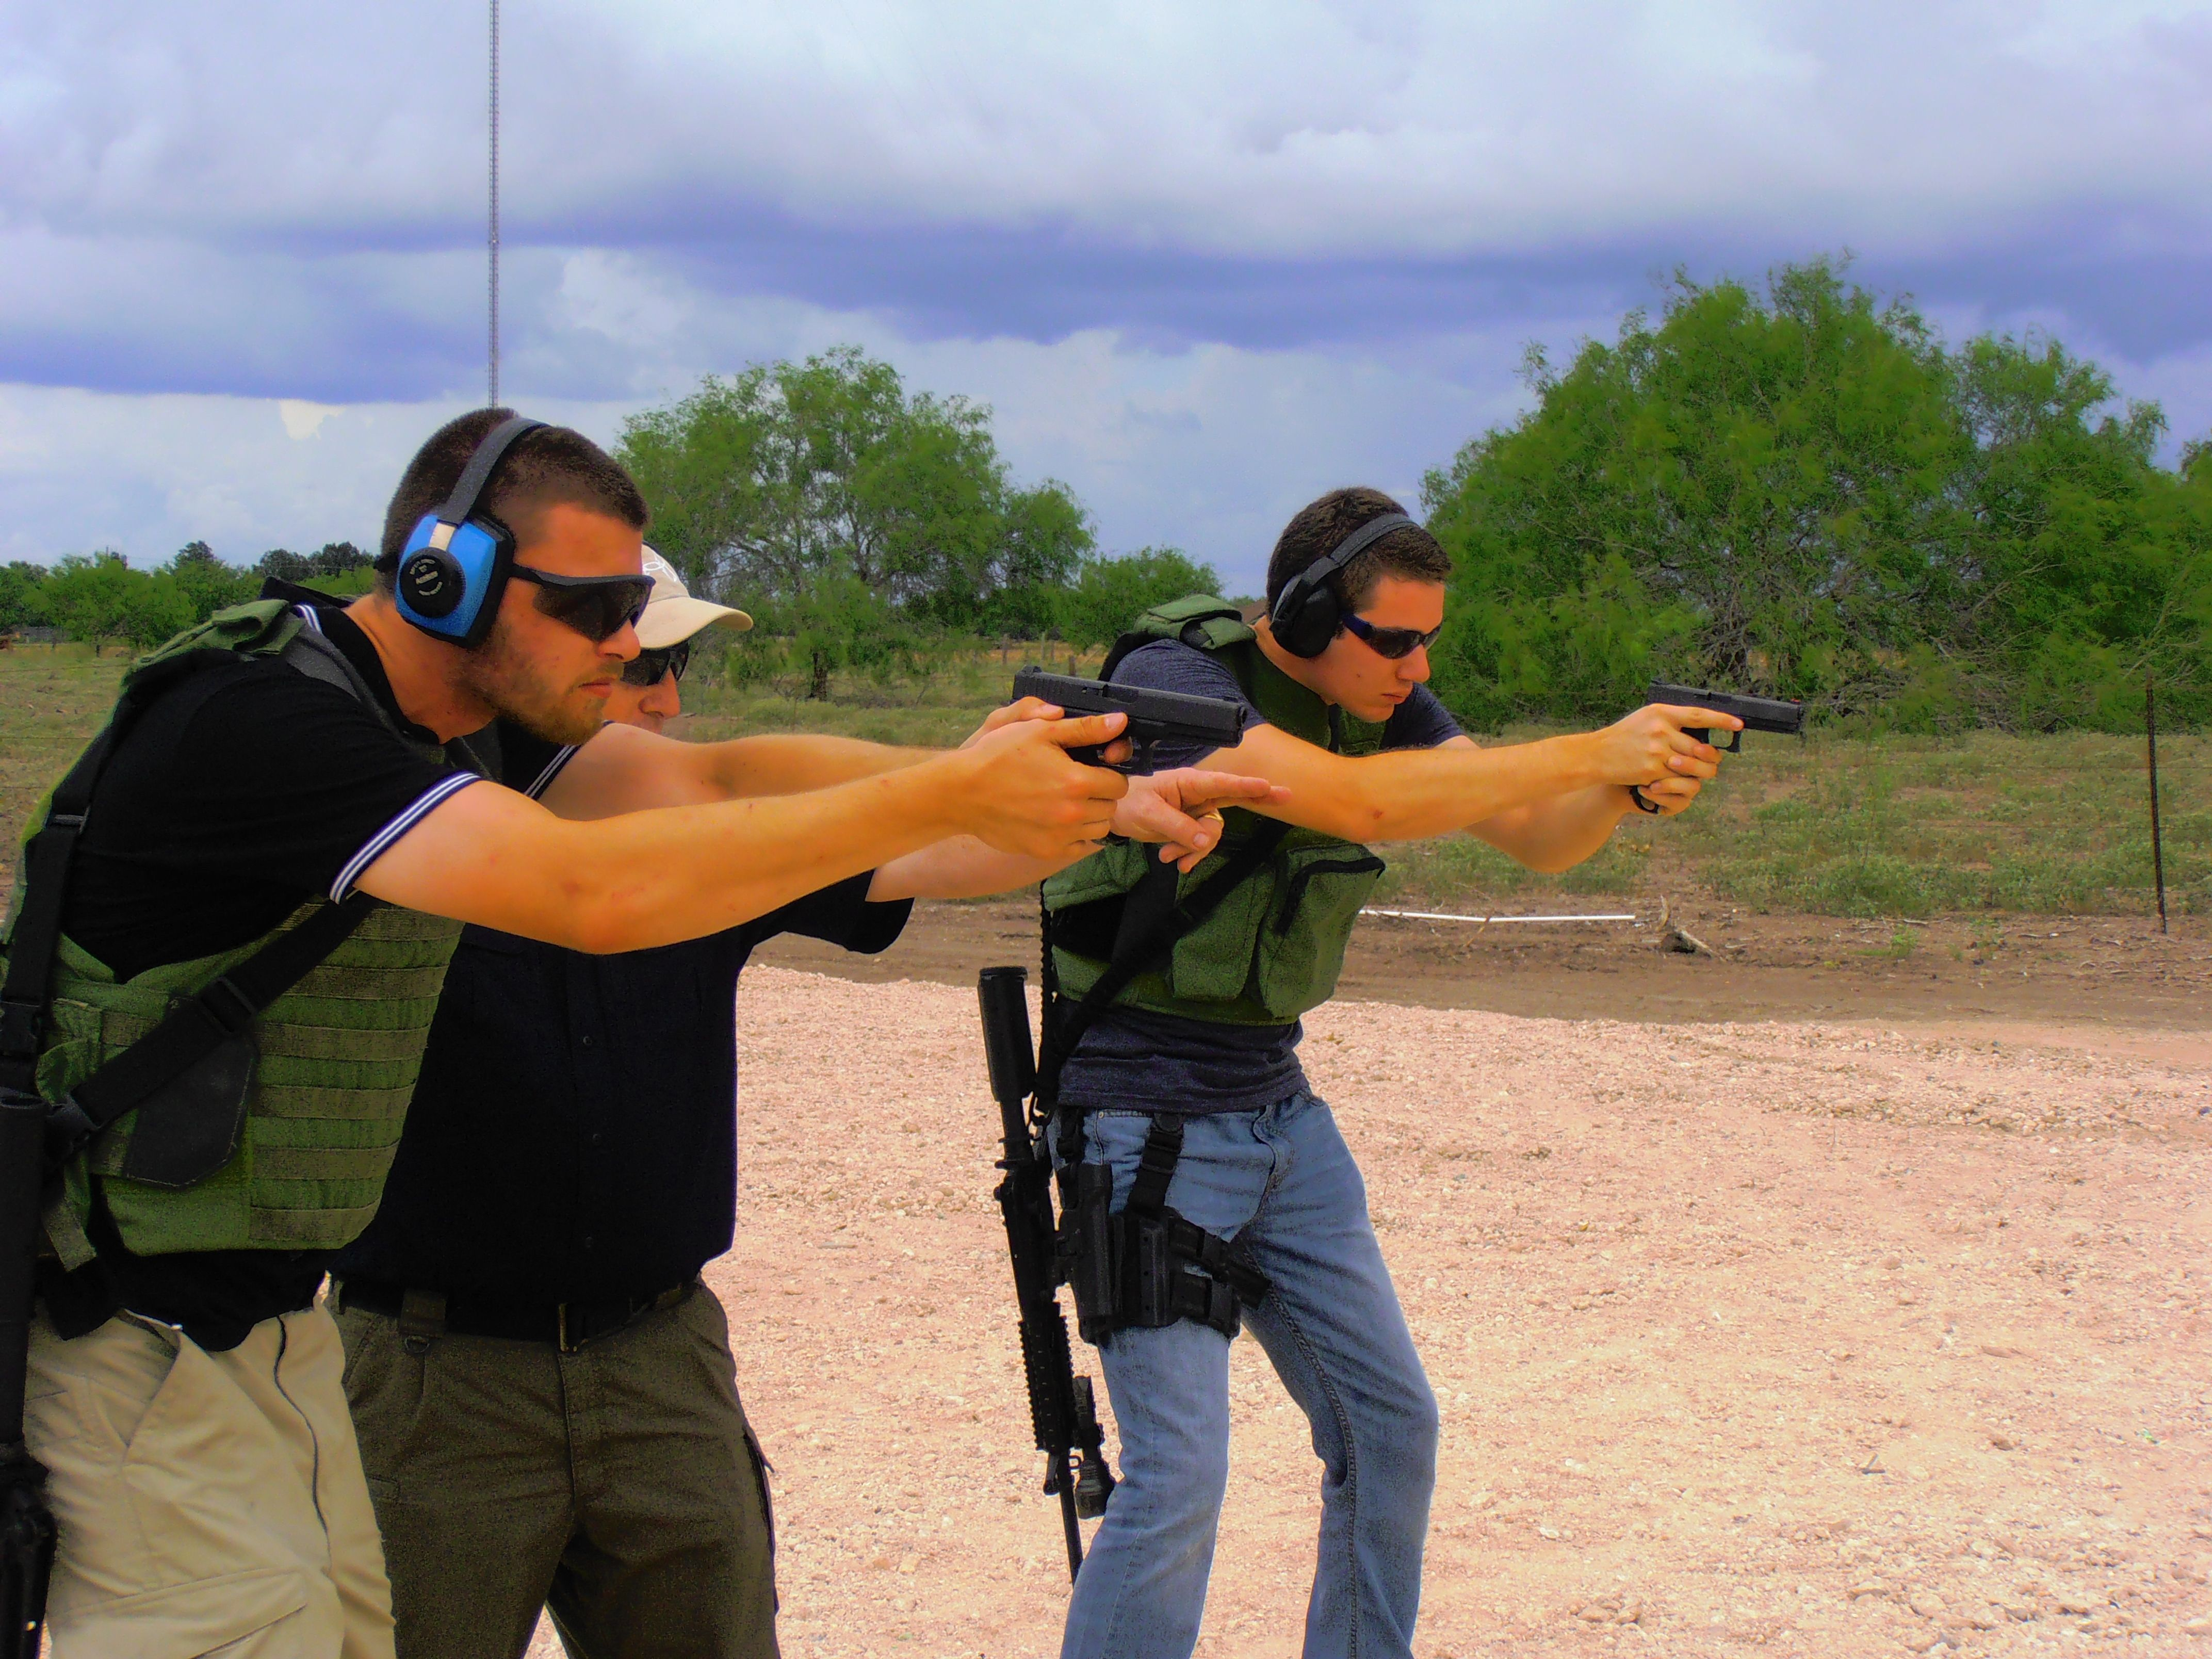 Concealed Online Reviews Online Concealed Carry Classes